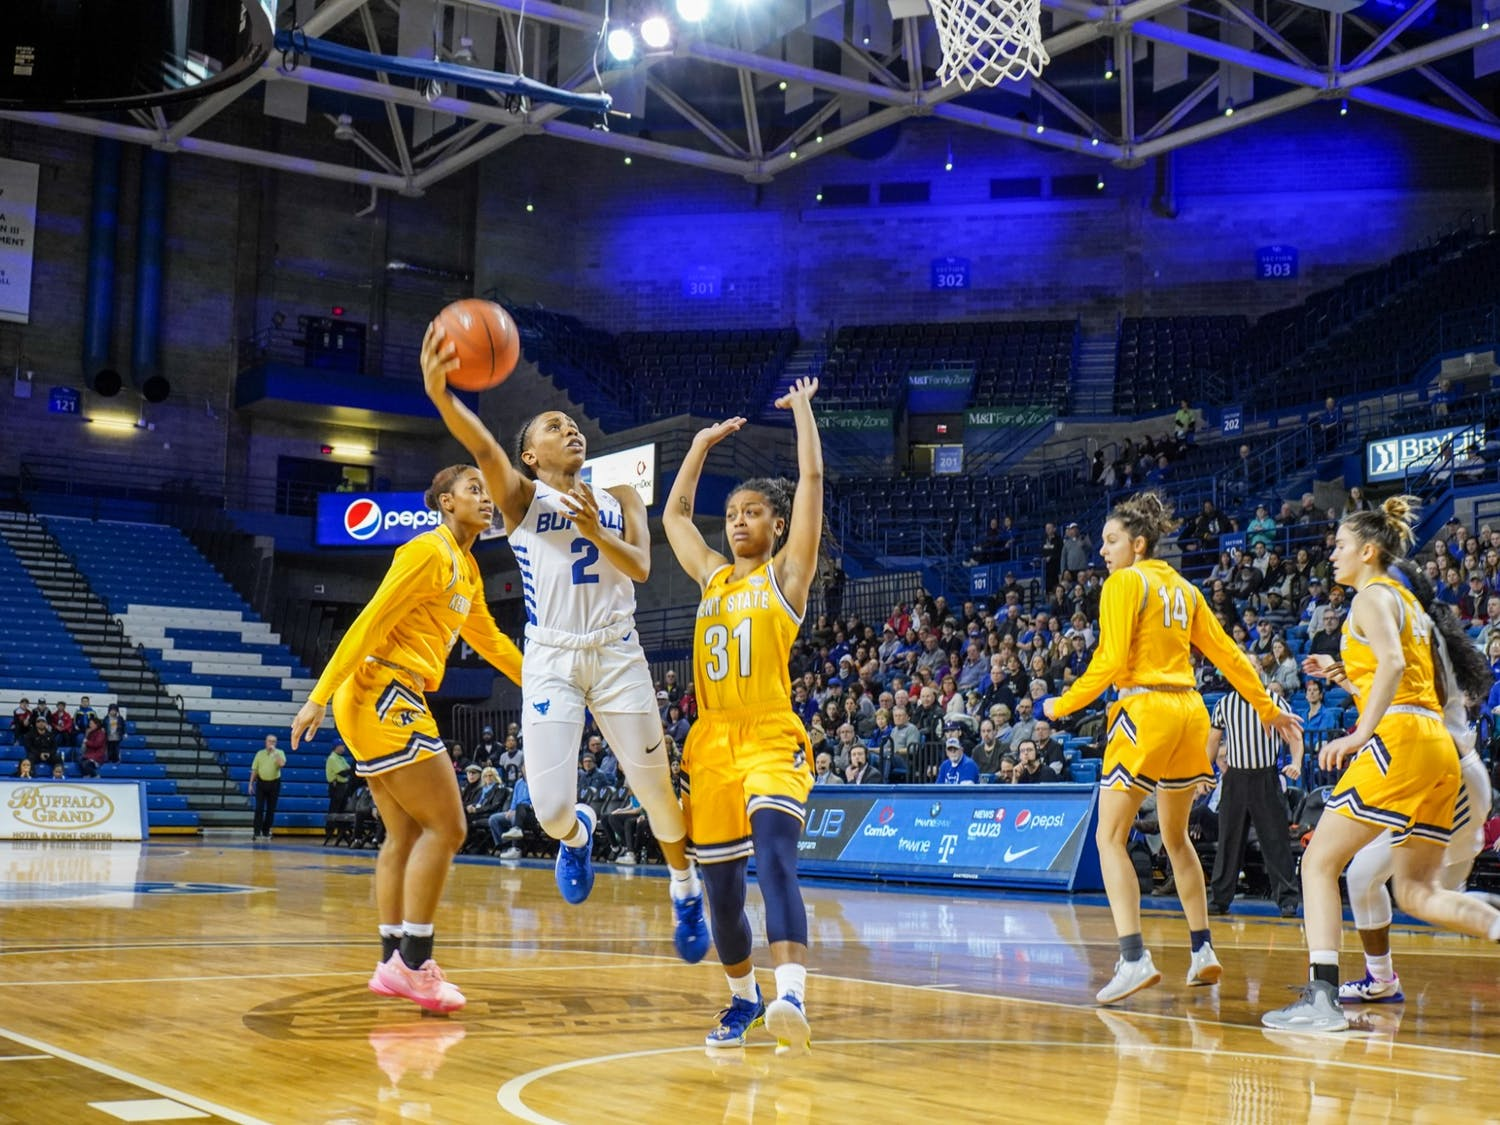 Sophomore guard Dyaisha Fair was named MAC Player of the Week for the fourth time this season.